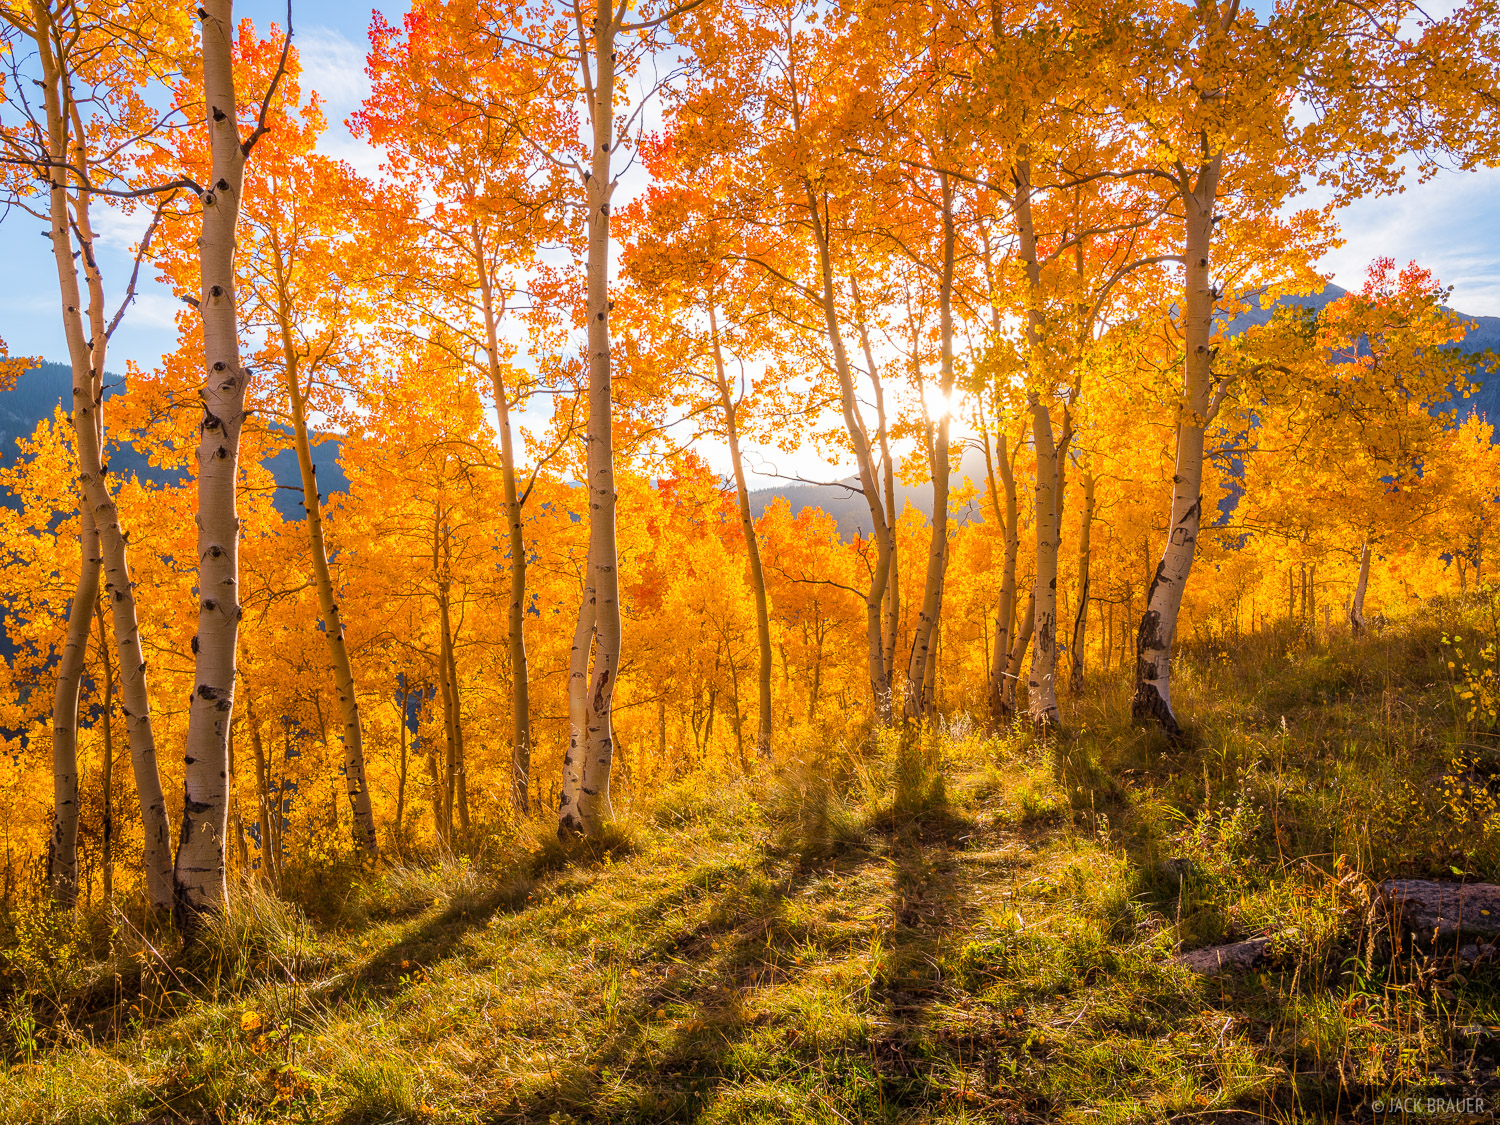 Colorado,Crested Butte,aspens, September